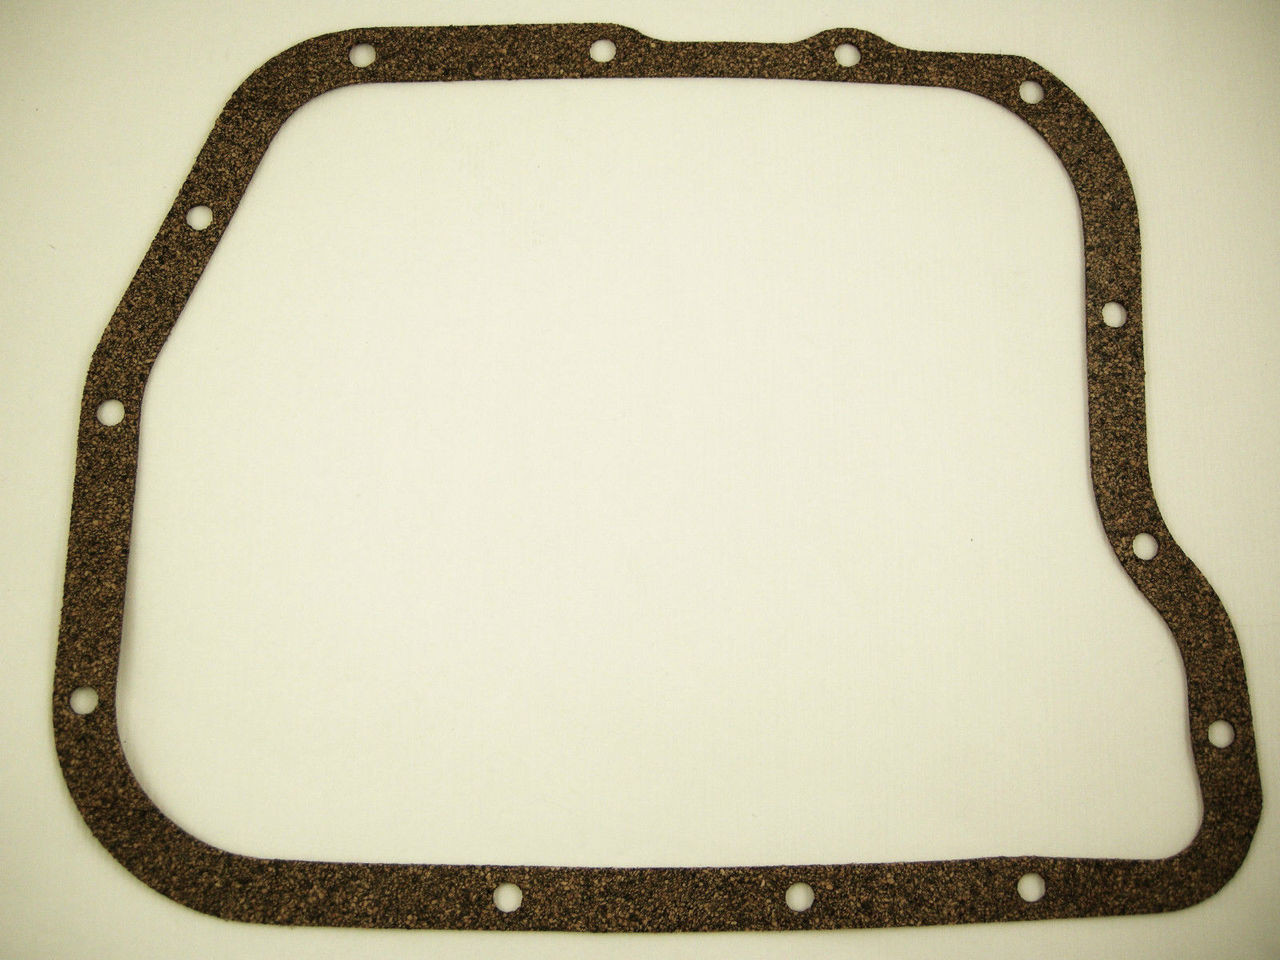 Torqueflite 8 Transmission Natural Cork Pan Gasket TF8 A727